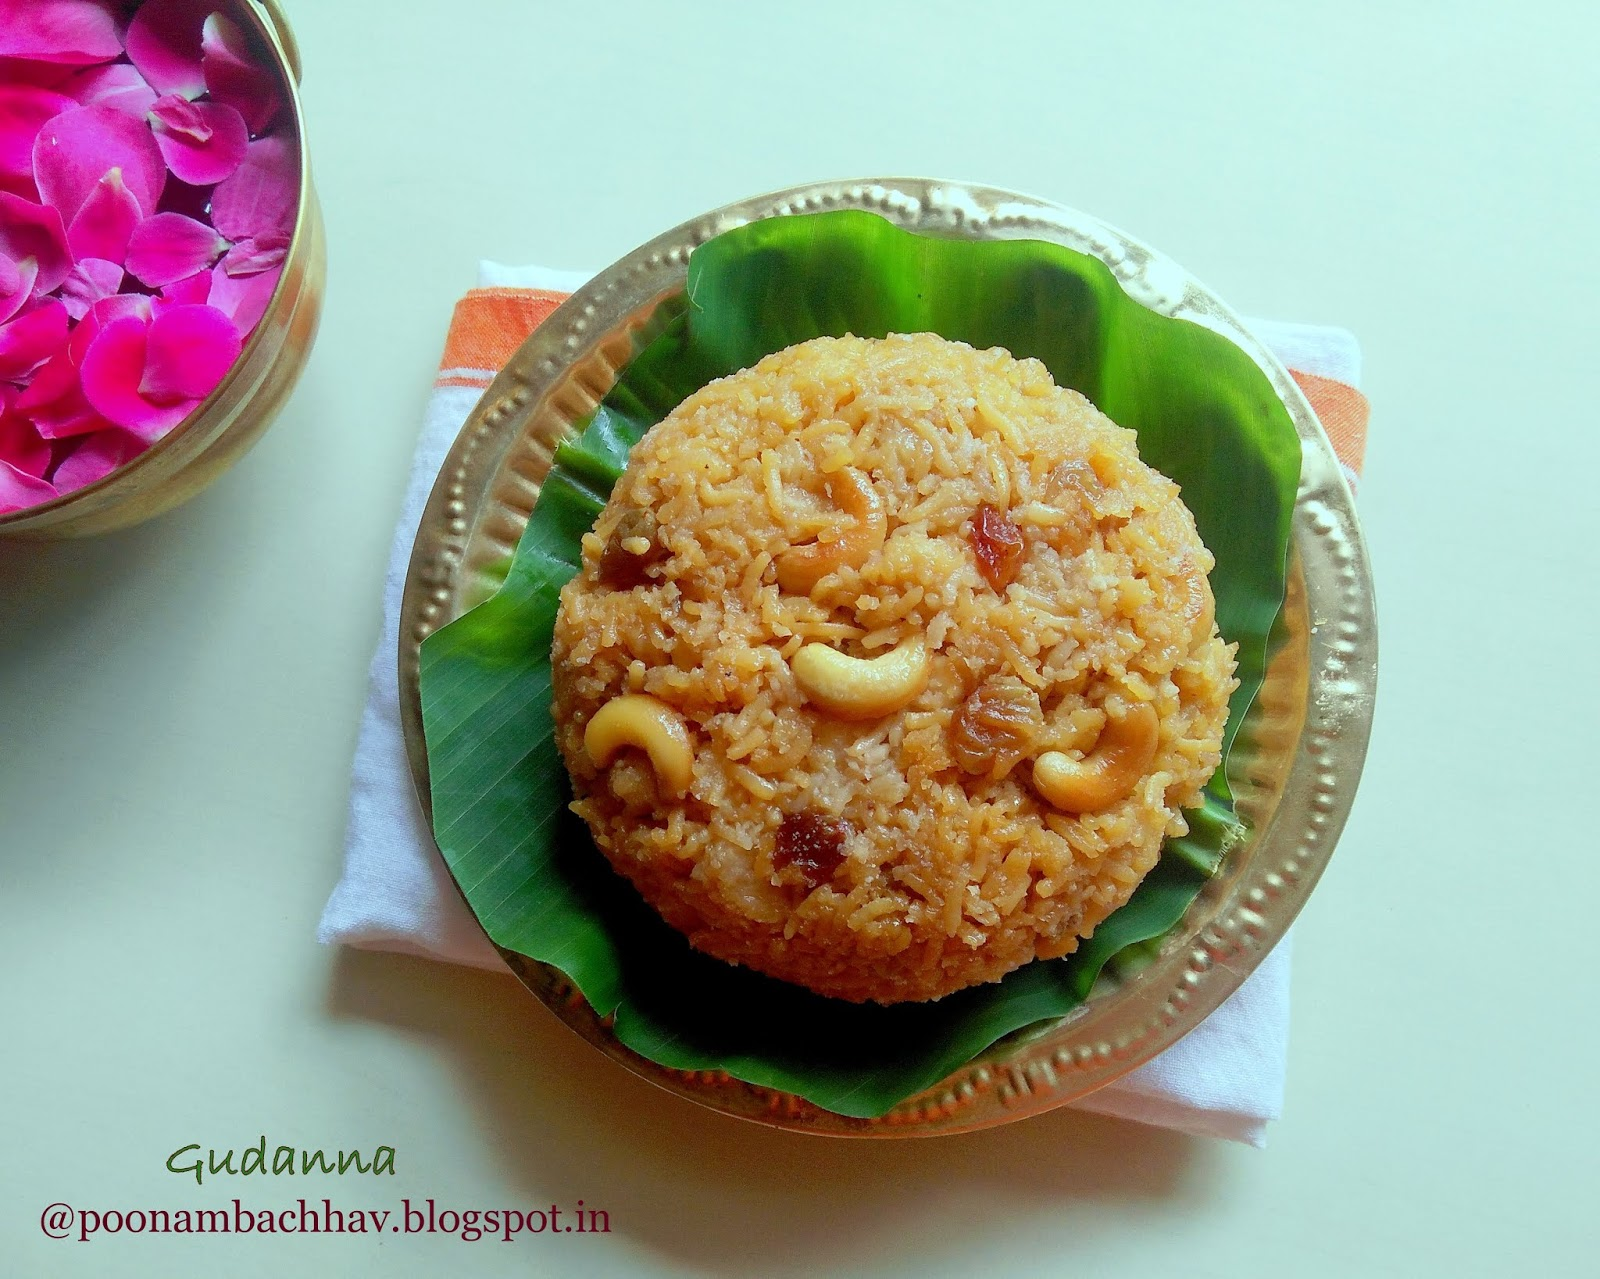 Indian food recipes indian recipes desi food desi recipes gudanna bella da anna is a traditional rice dessert from the karnataka cuisine gudaor bella means jaggery in kannada and anna means rice forumfinder Image collections